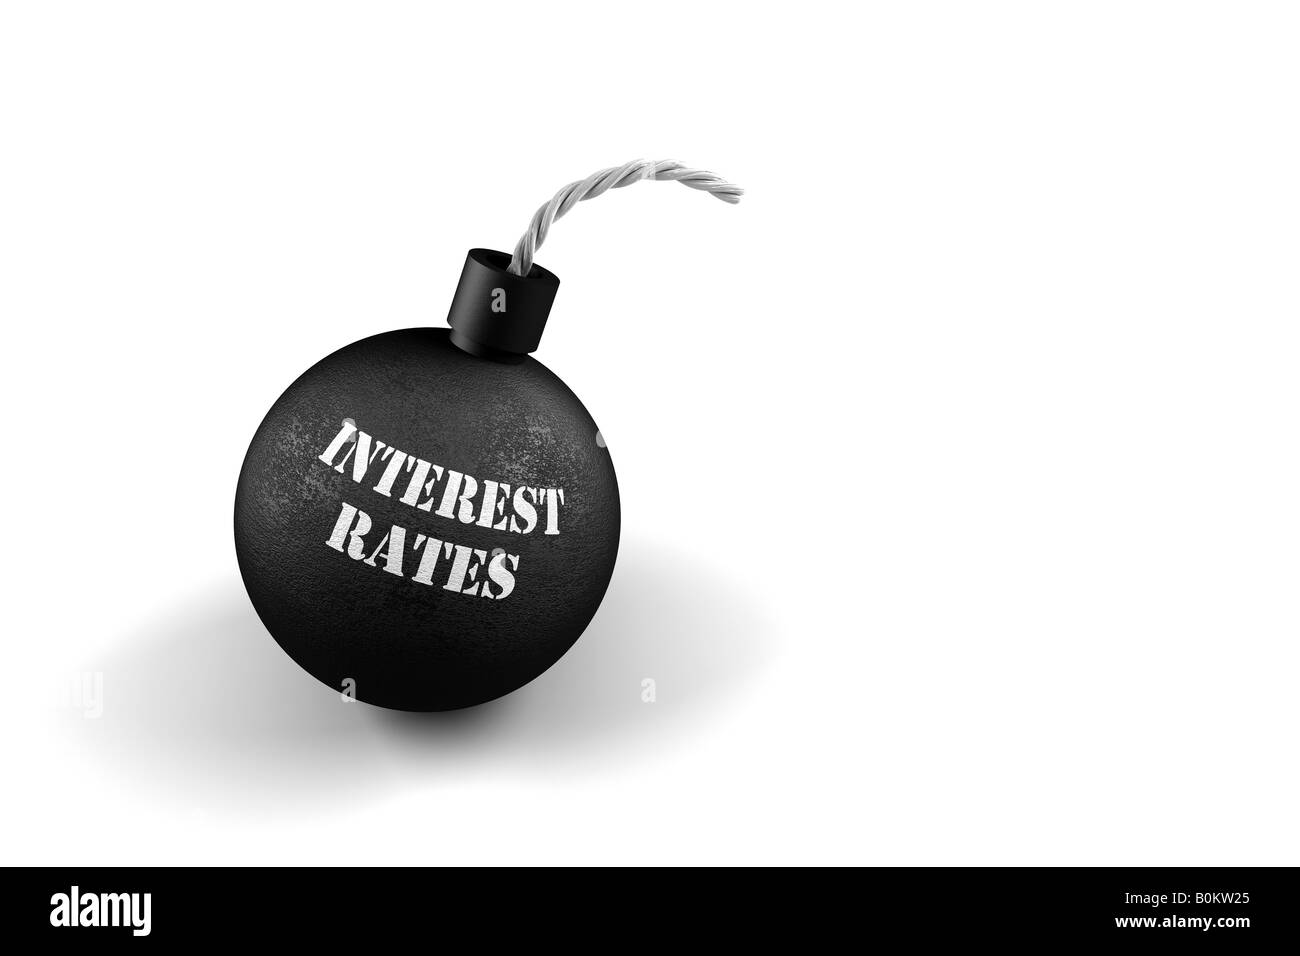 Exploding Interest Rates conceptual image for exploding interest rates - Stock Image